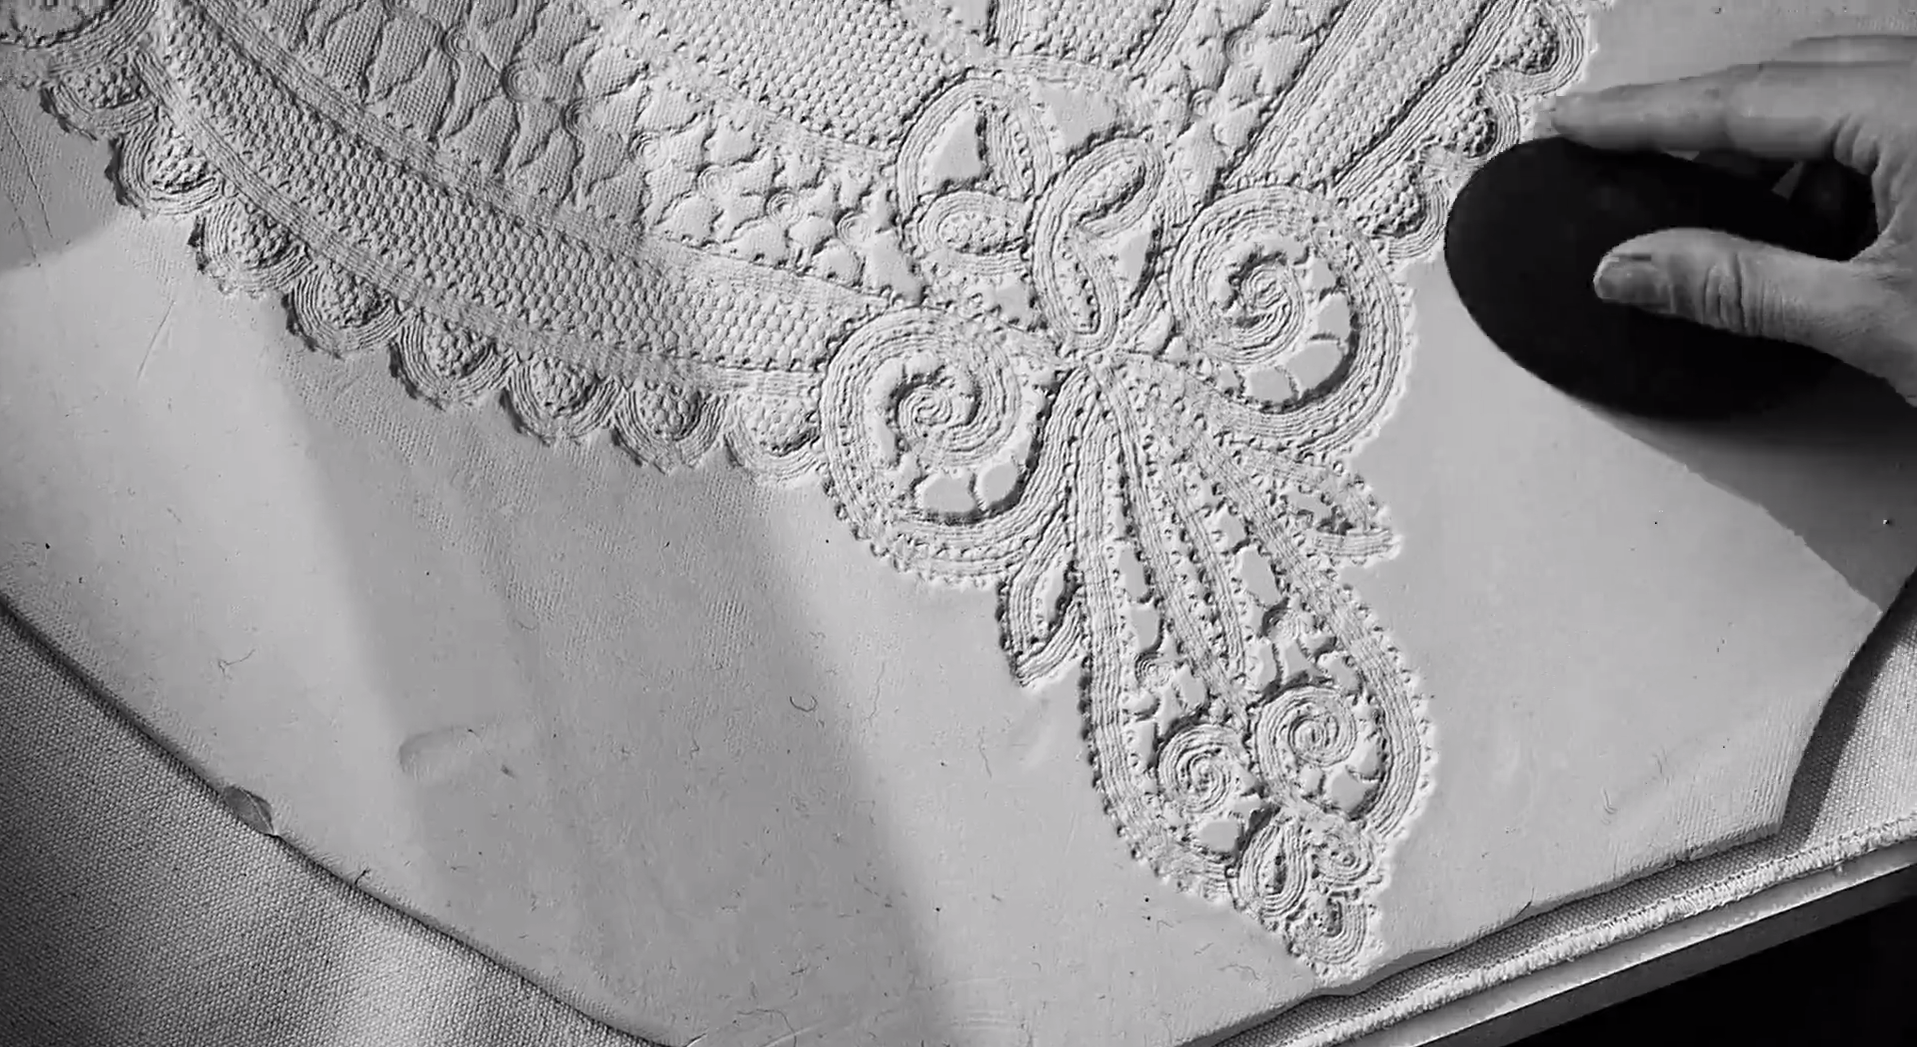 A still of me working on the porcelain lace cape from the craft processes video. The Cape Reimagined shows some of the processes behind the capes, watch fleeting glimpses of me working in the viedos  here .